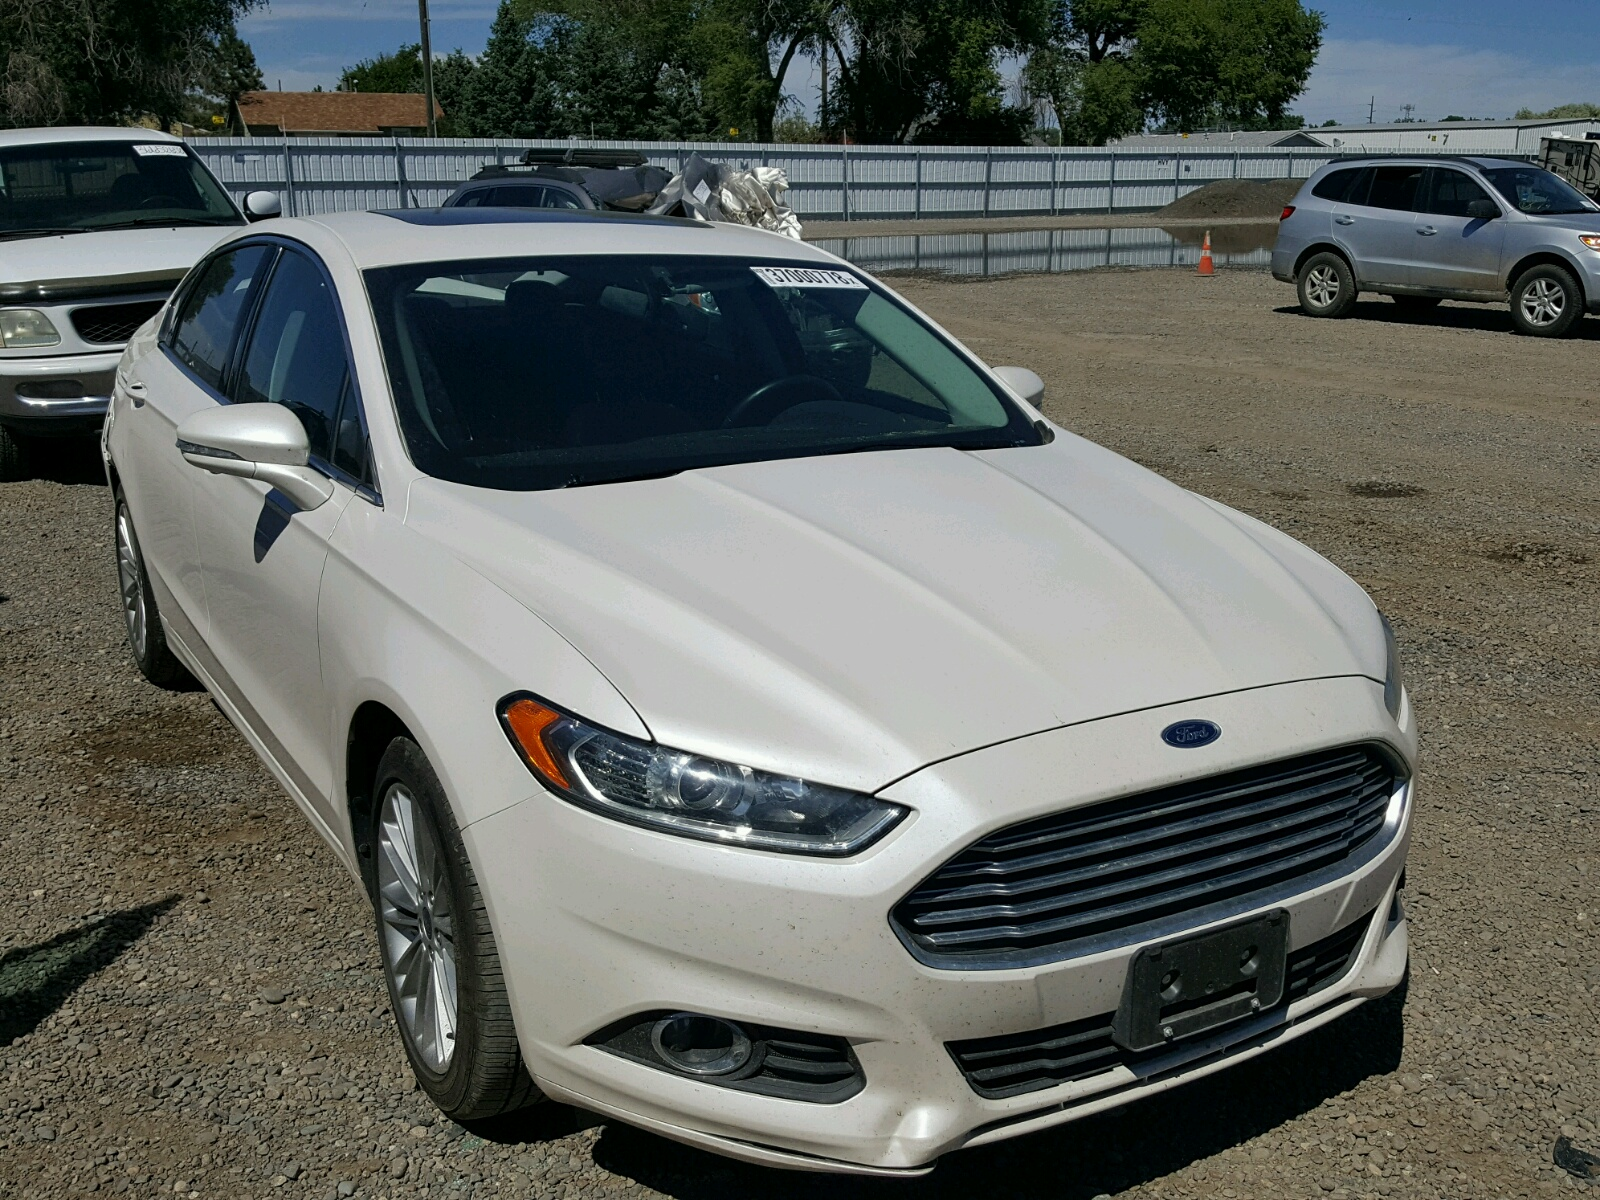 2014 Ford Fusion SE for sale at Copart Billings MT Lot